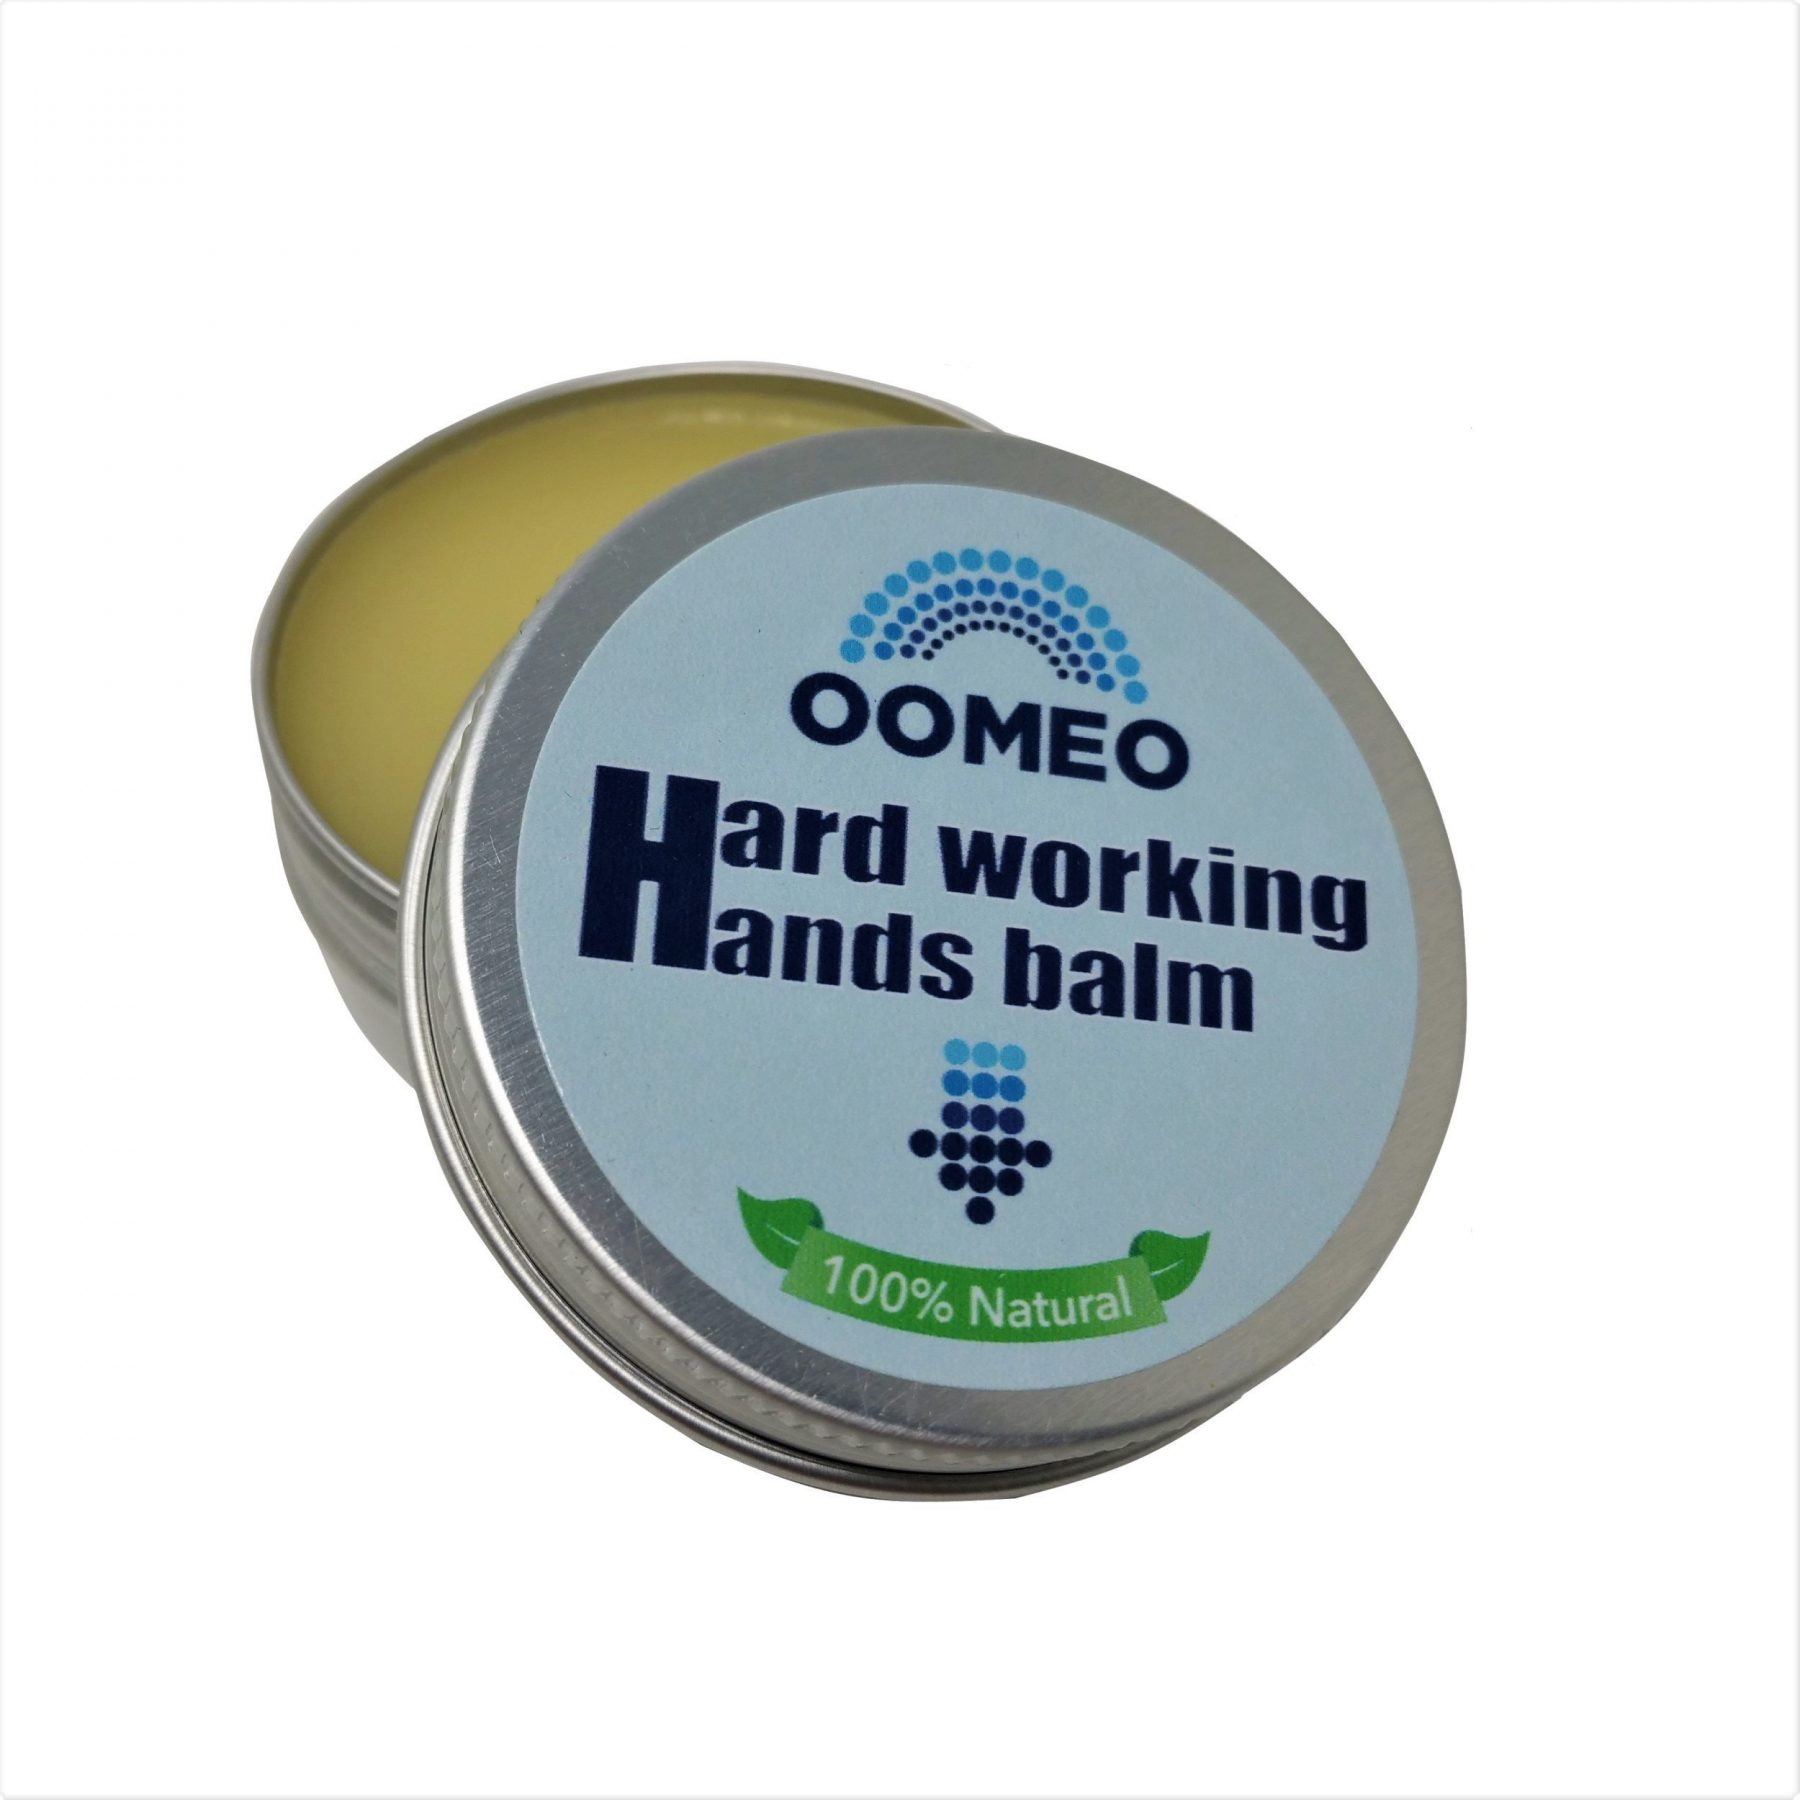 Hard Working Hands balm